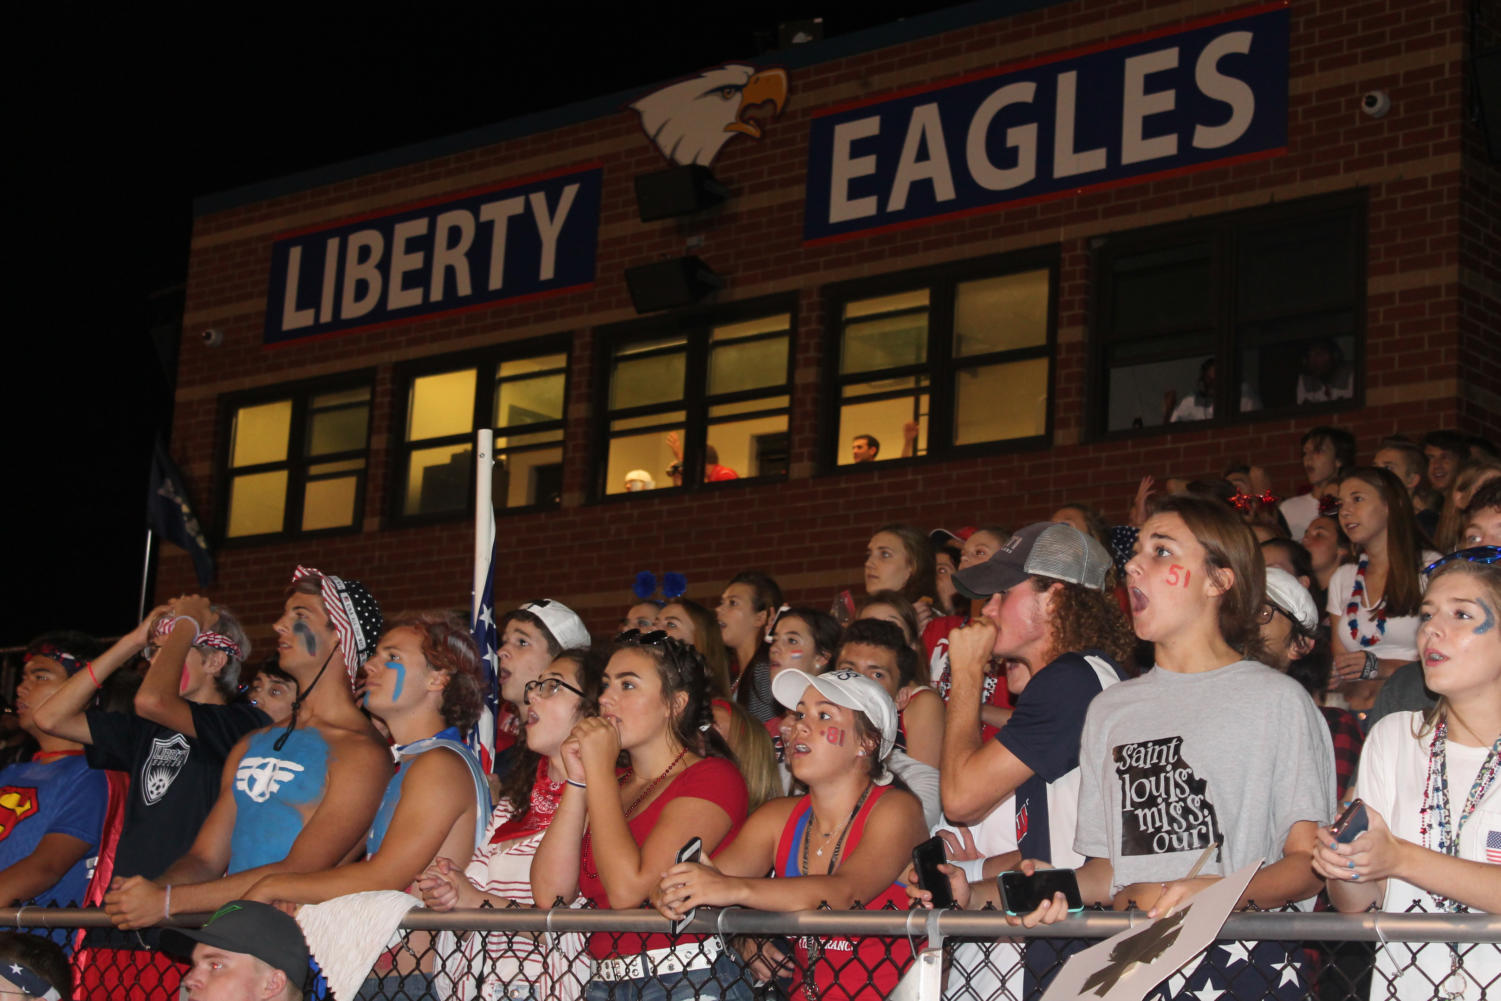 After Warrenton rallied late in the fourth quarter to make it a one possession game, the student section anticipates a close finish. A defensive stop in the closing minute sealed the Eagles 20-13 victory.